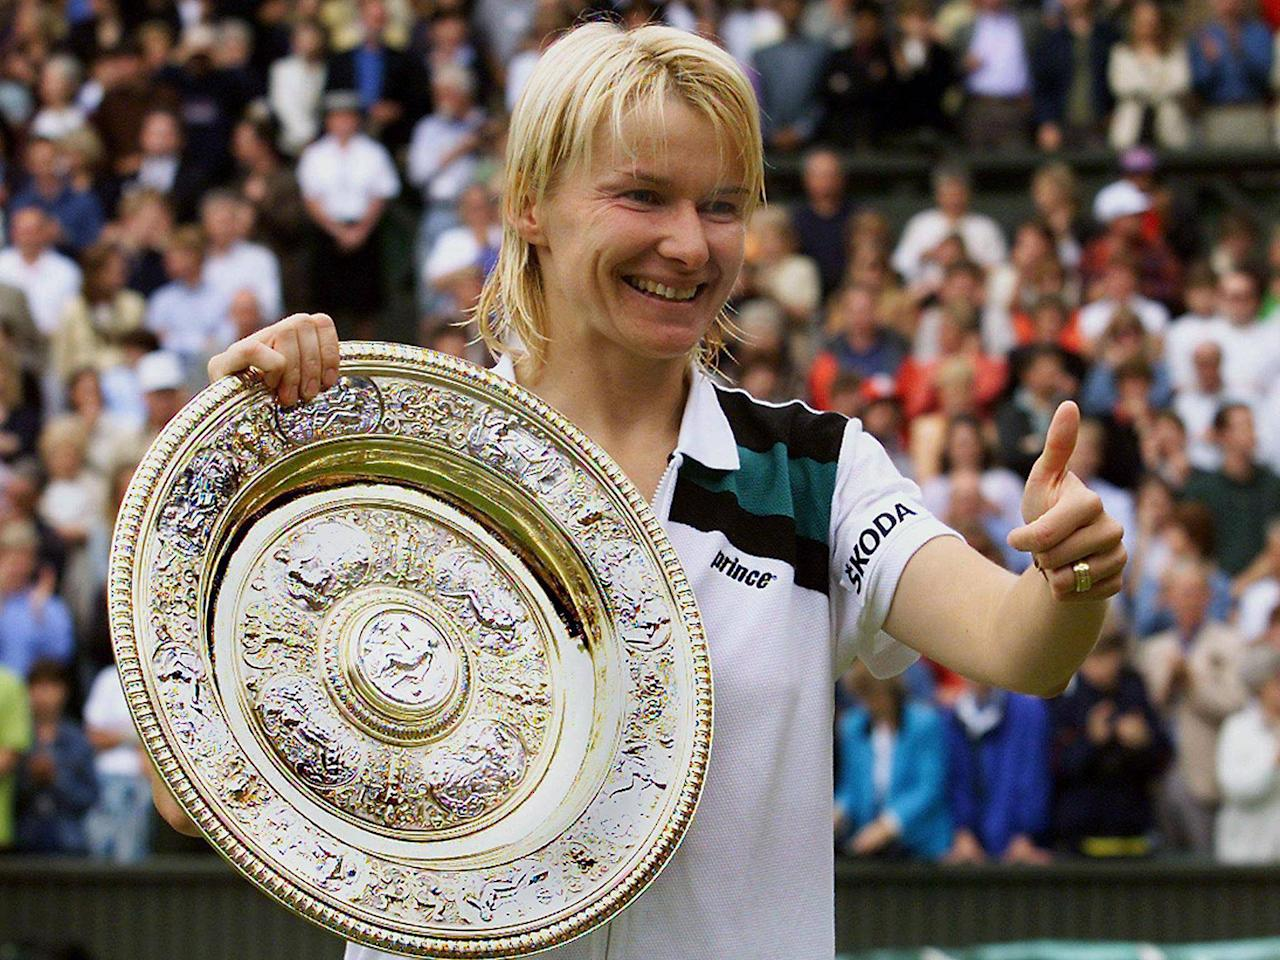 Jana Novotna: Czech tennis player who won Wimbledon in a huge comeback she was never given credit for